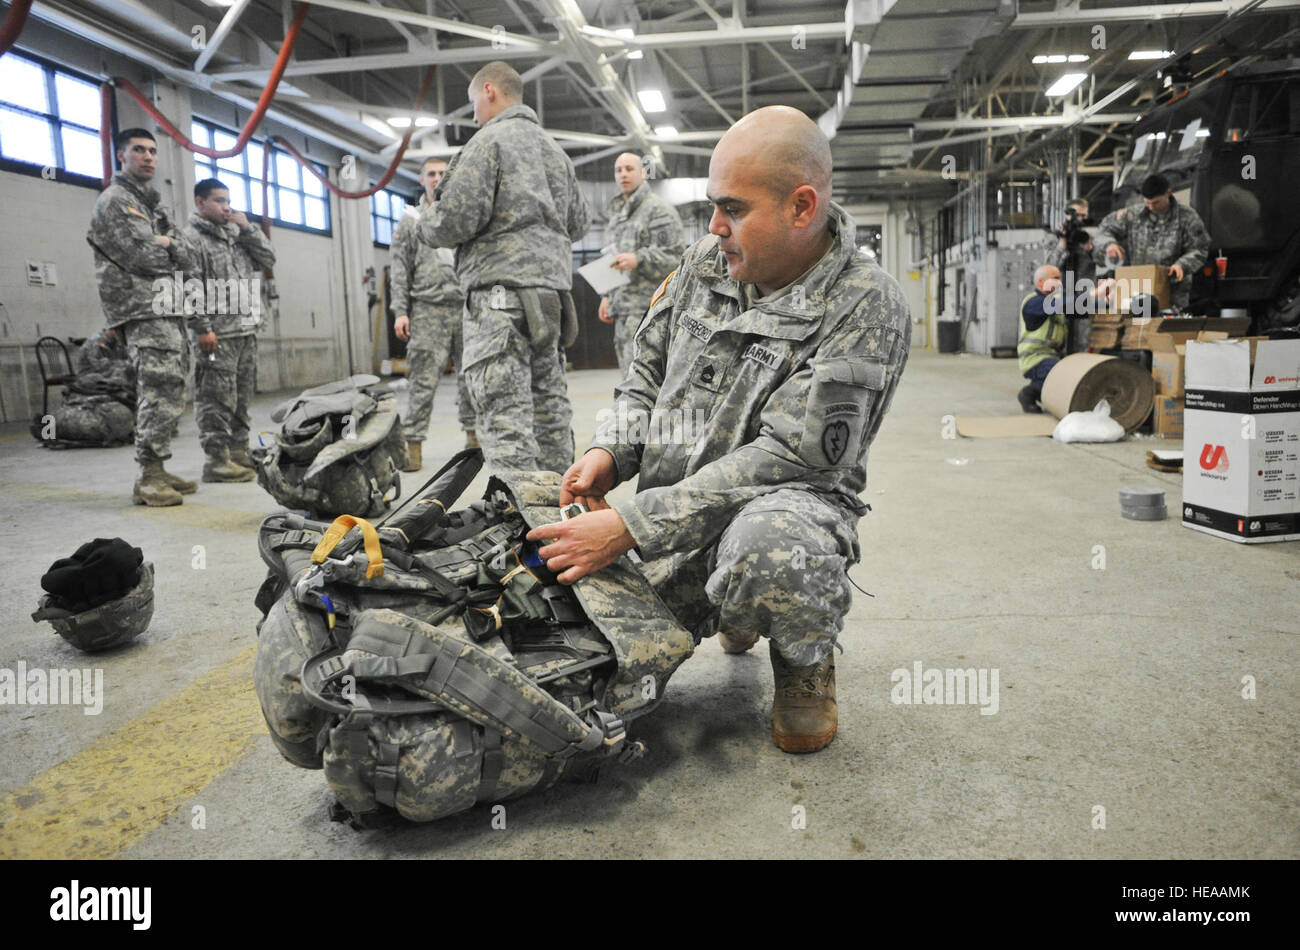 Army Sgt. 1st Class Randall Summerford, a native of Oxnard, Calif., rigs his rucksack for a parachute jump as fellow Stock Photo